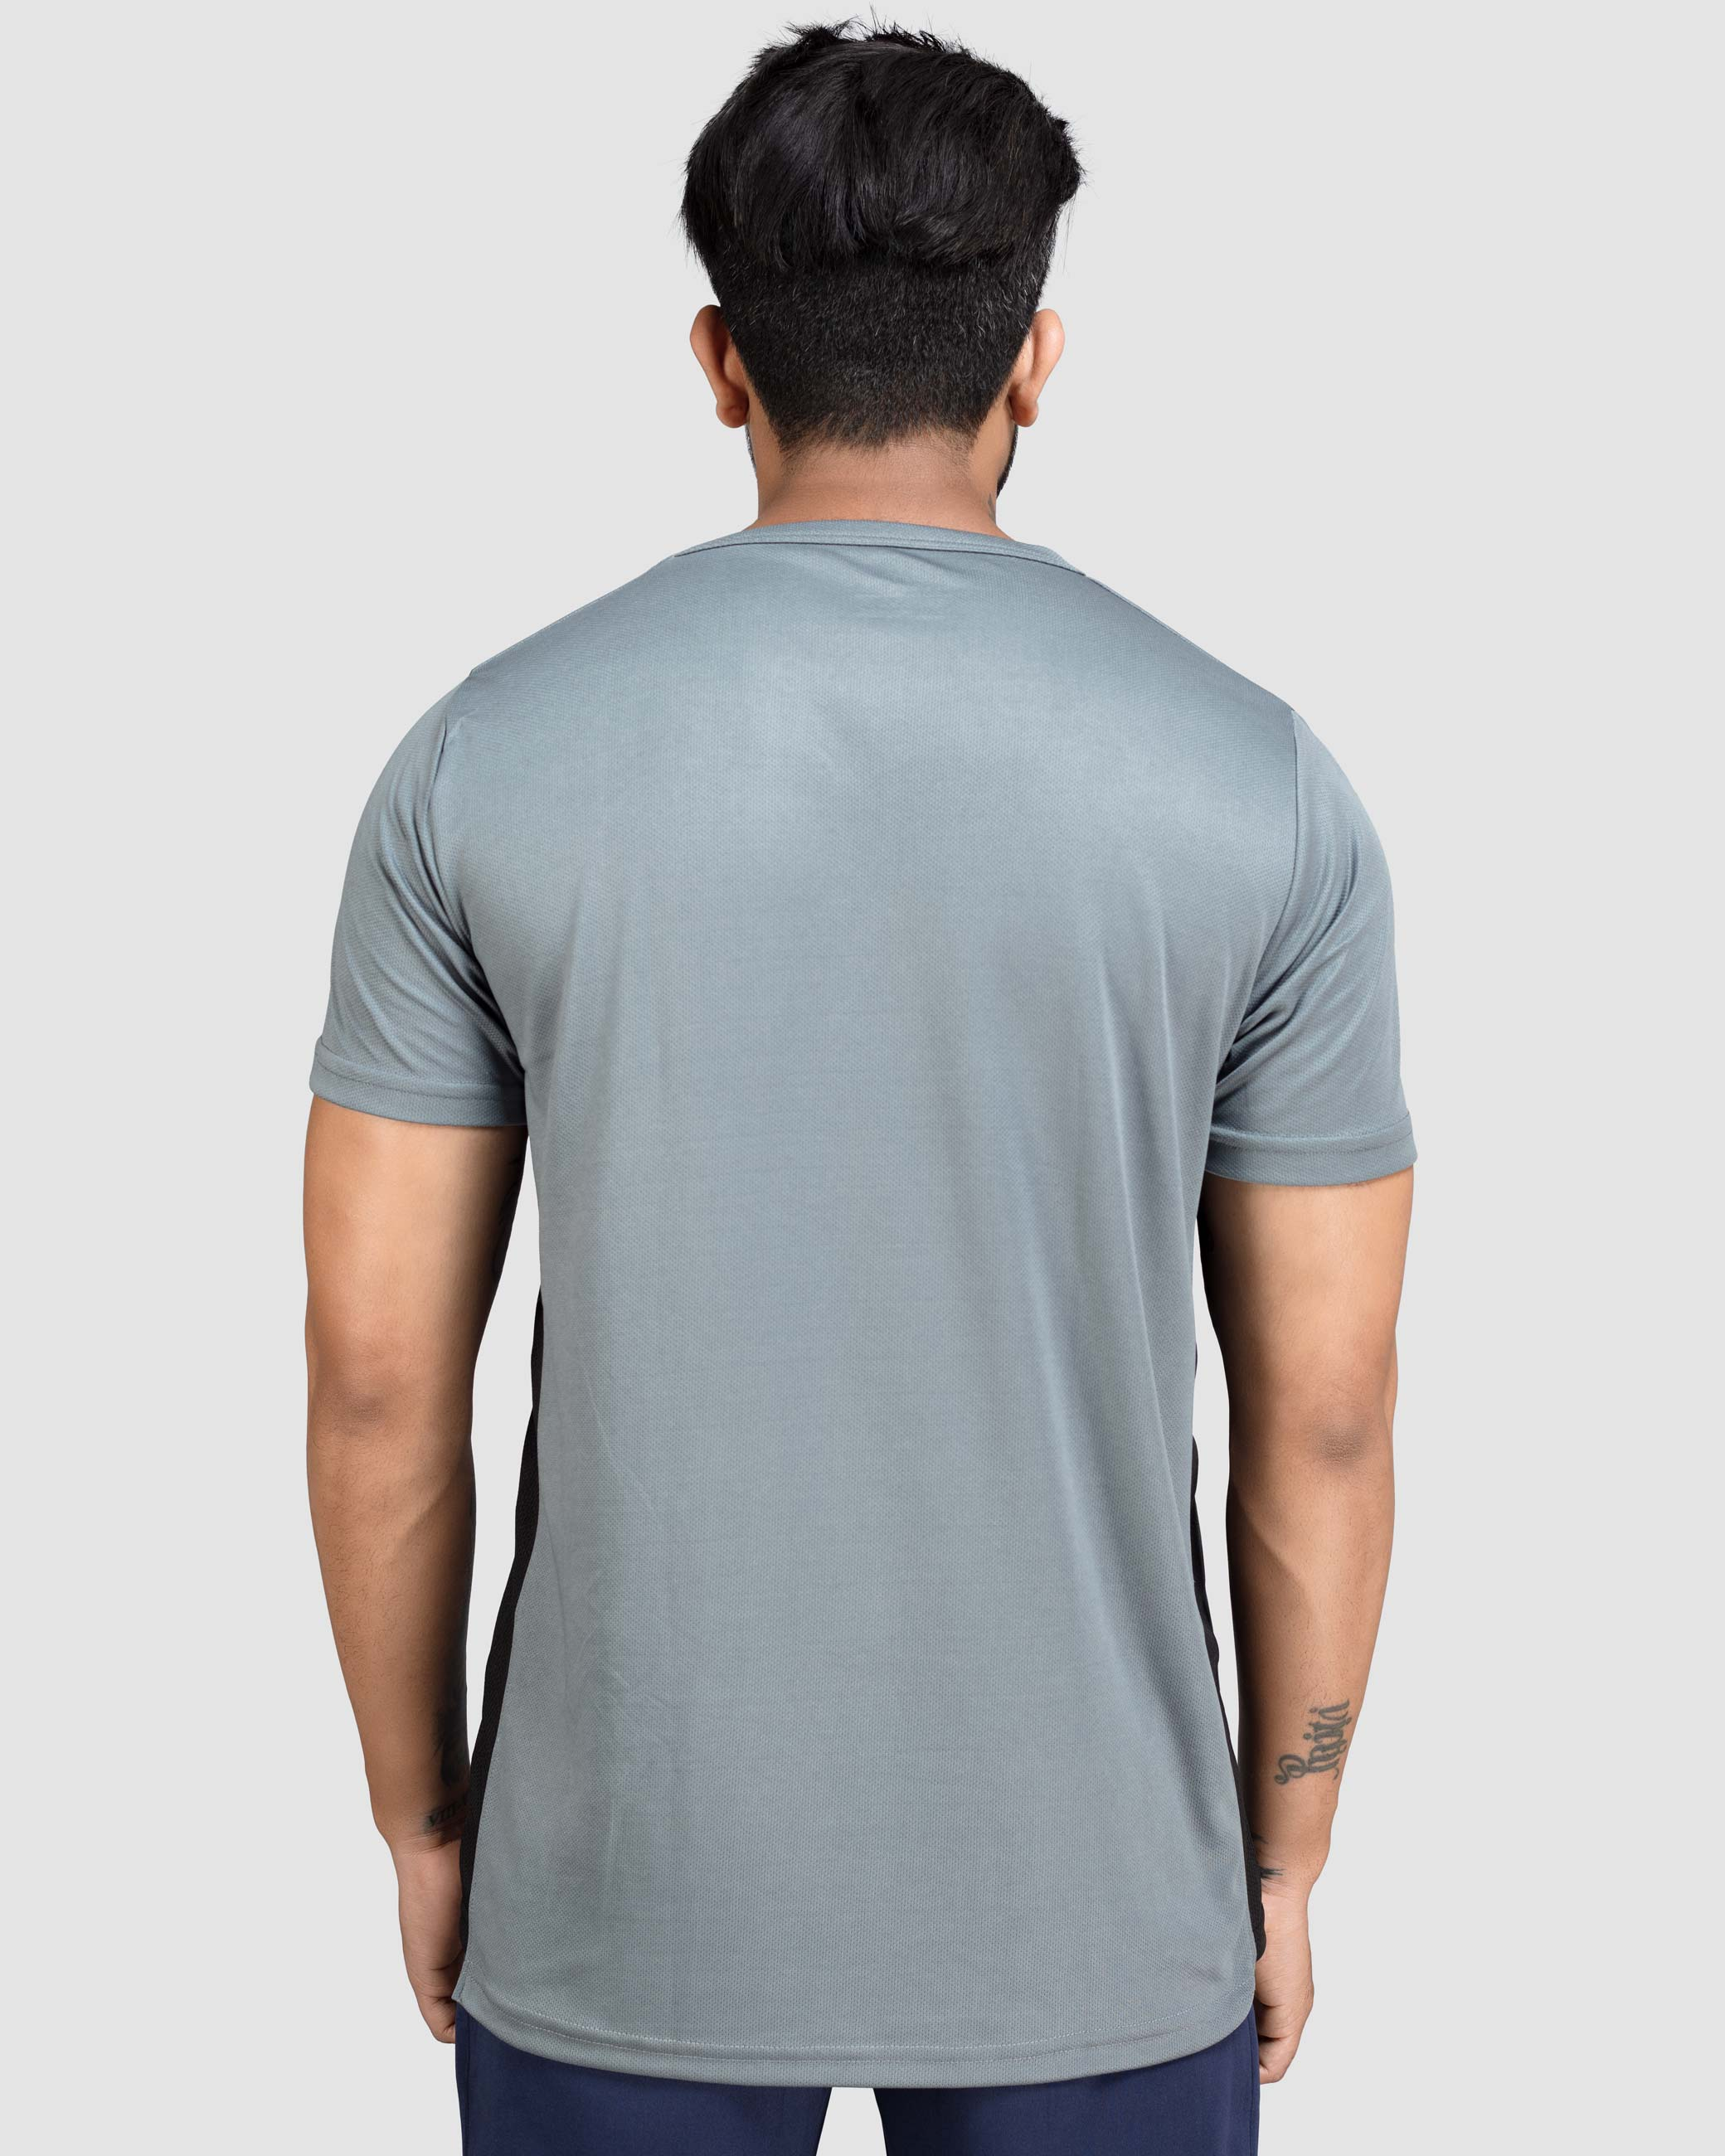 Flex Inspire side strip crew neckline t-shirt(Steel Gray) Athflex